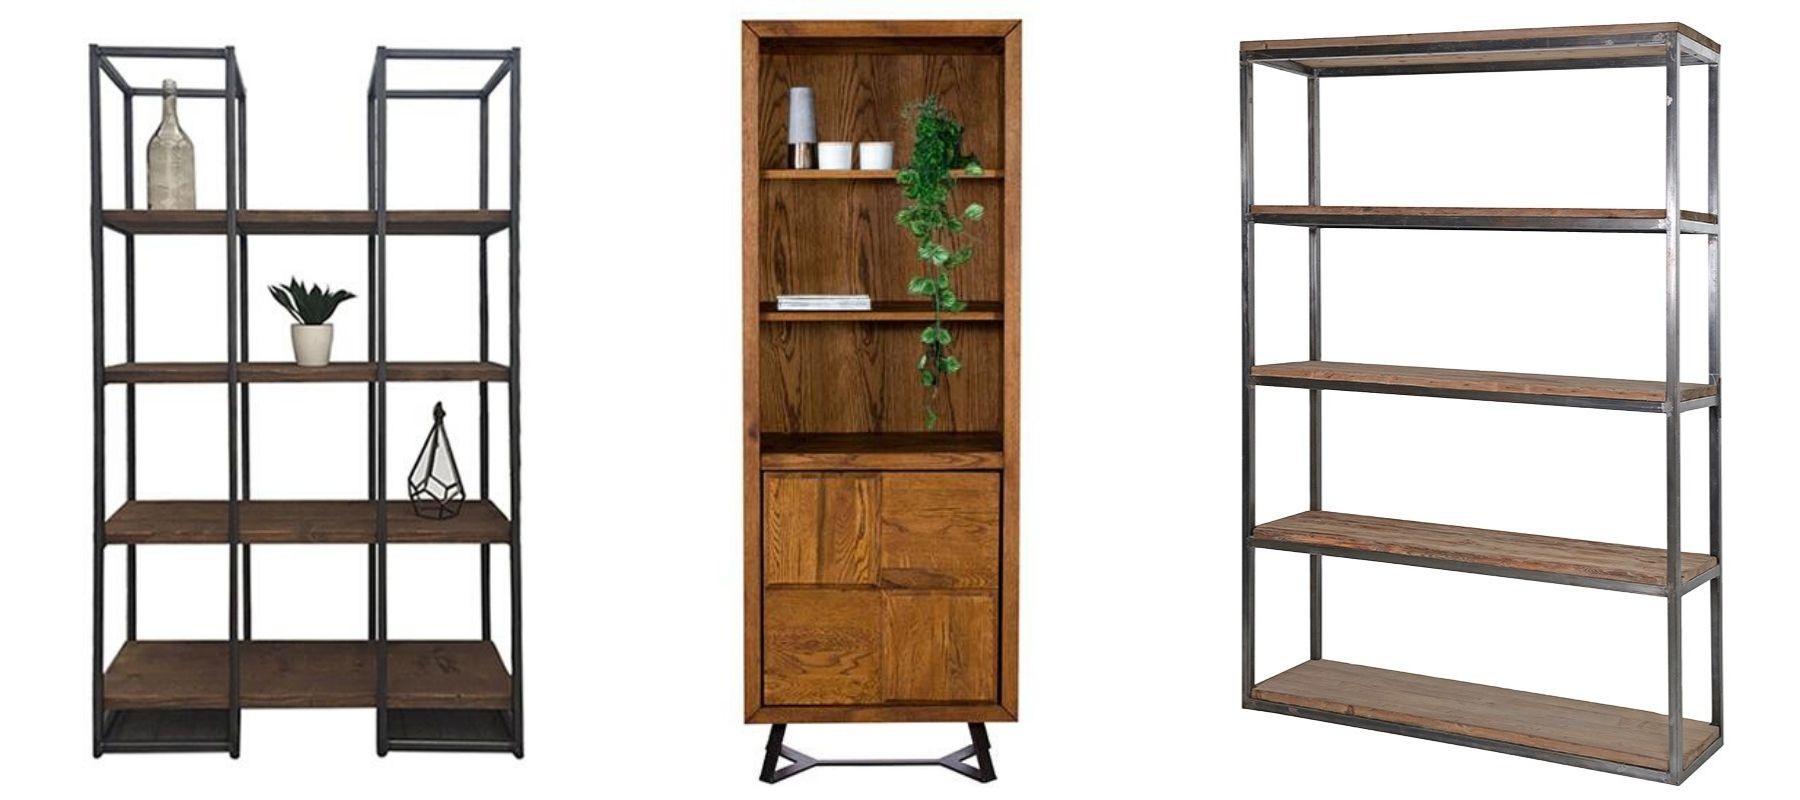 Three styles of industrial office storage, including metal bookcases